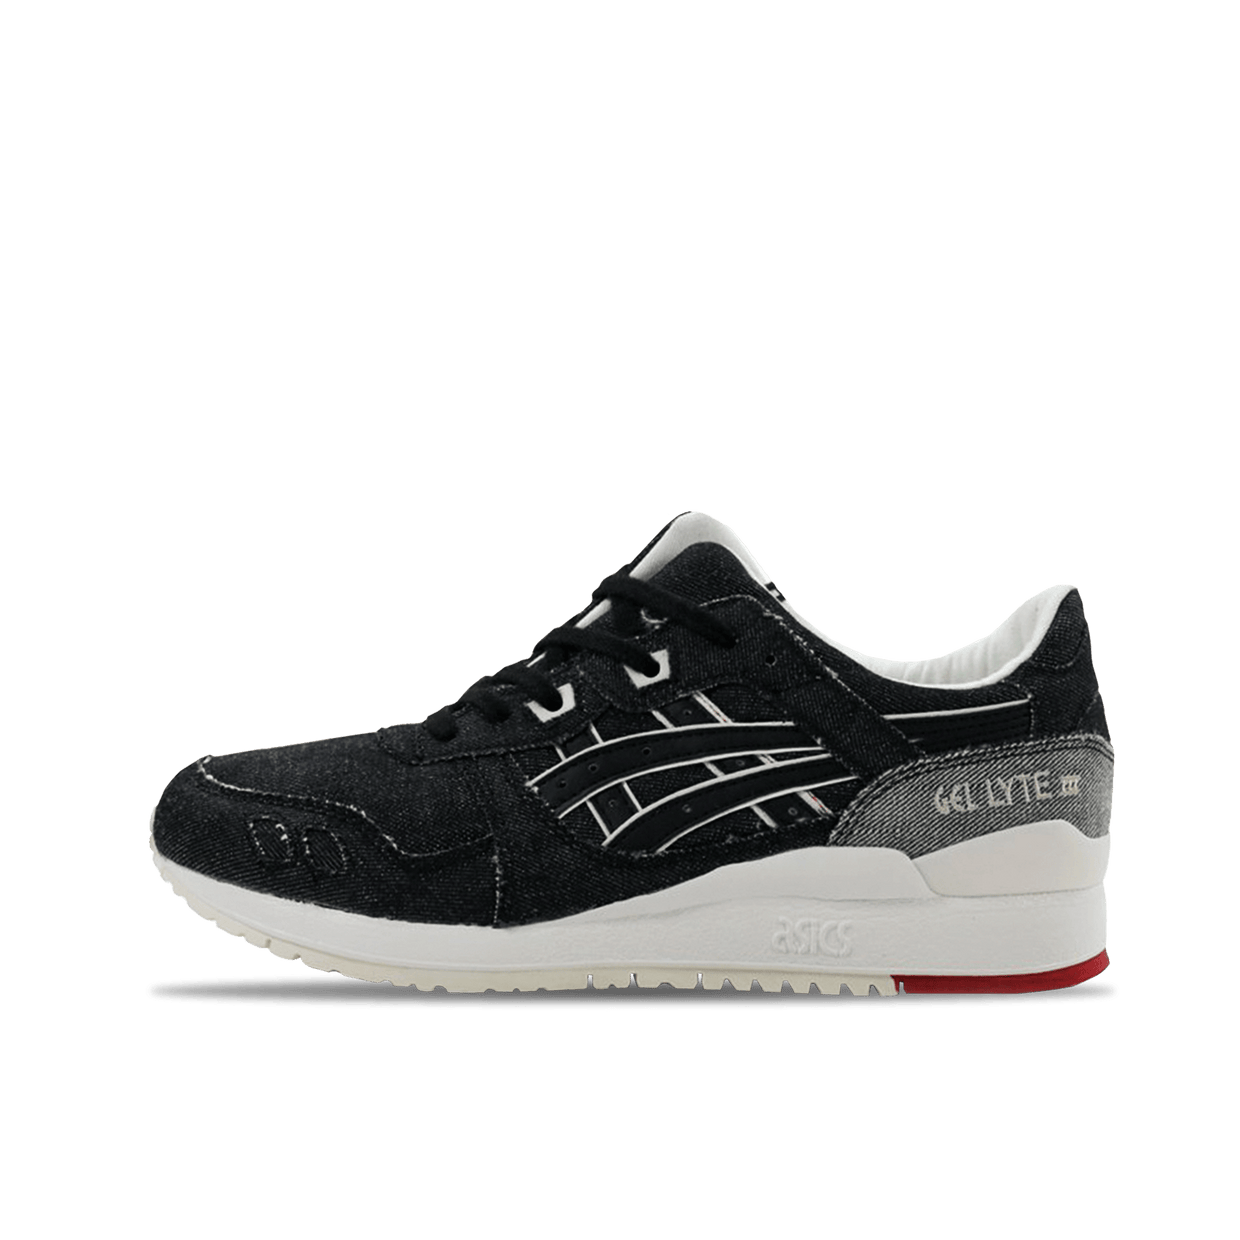 Gel lyte III - Black